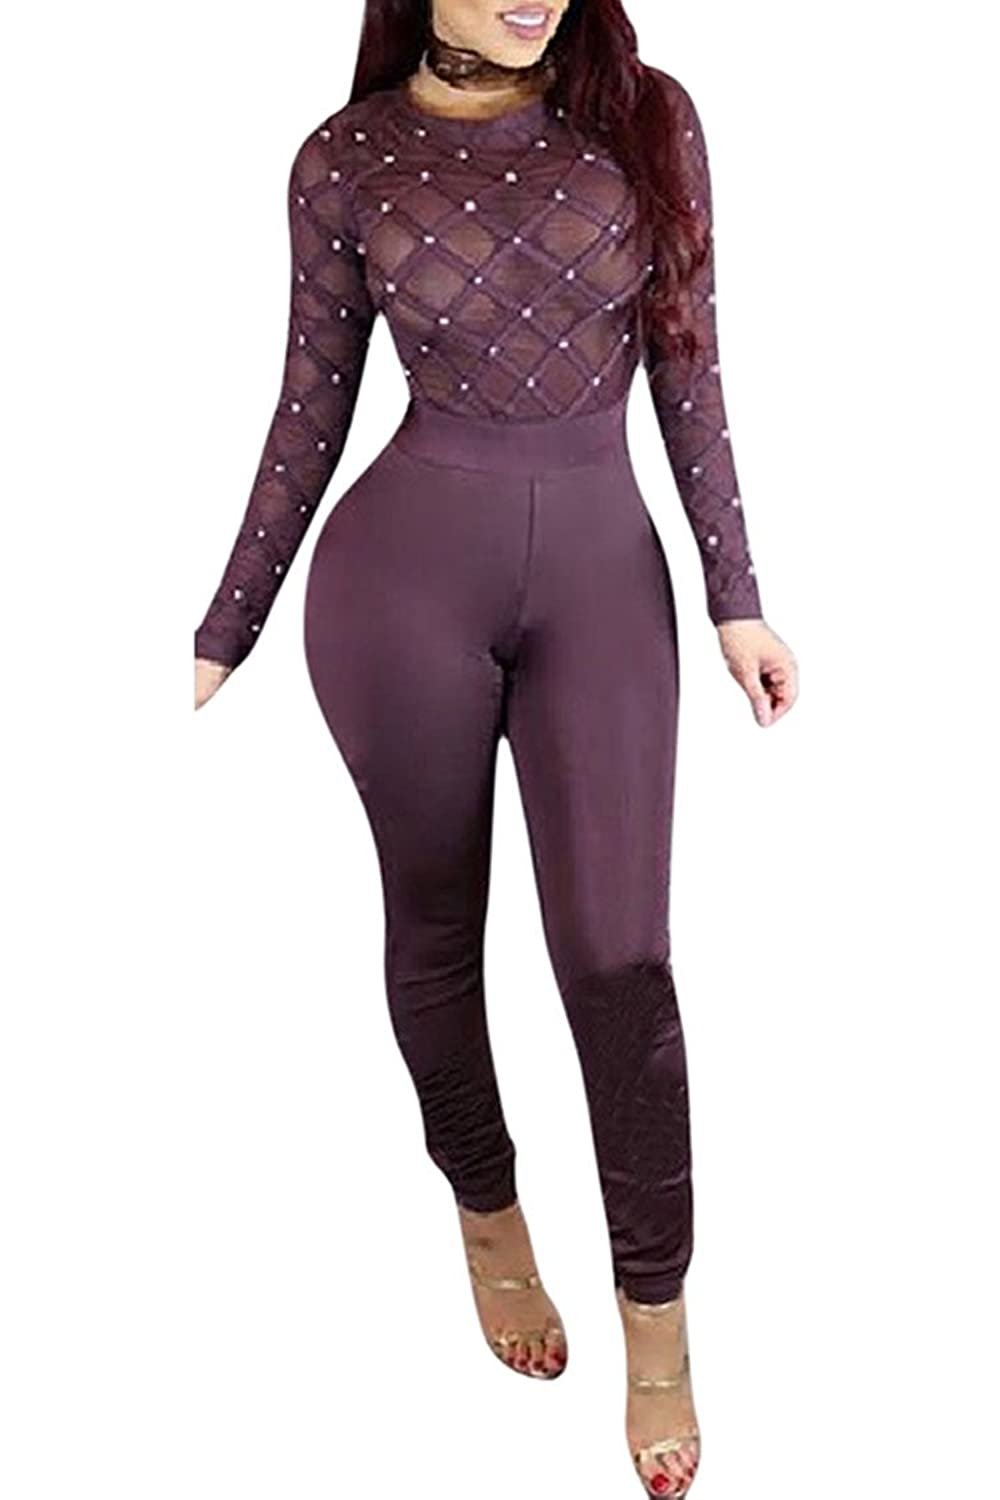 Rokiney Women Sexy See Through Mesh Beads Top Bodycon Clubwear Jumpsuits Rompers